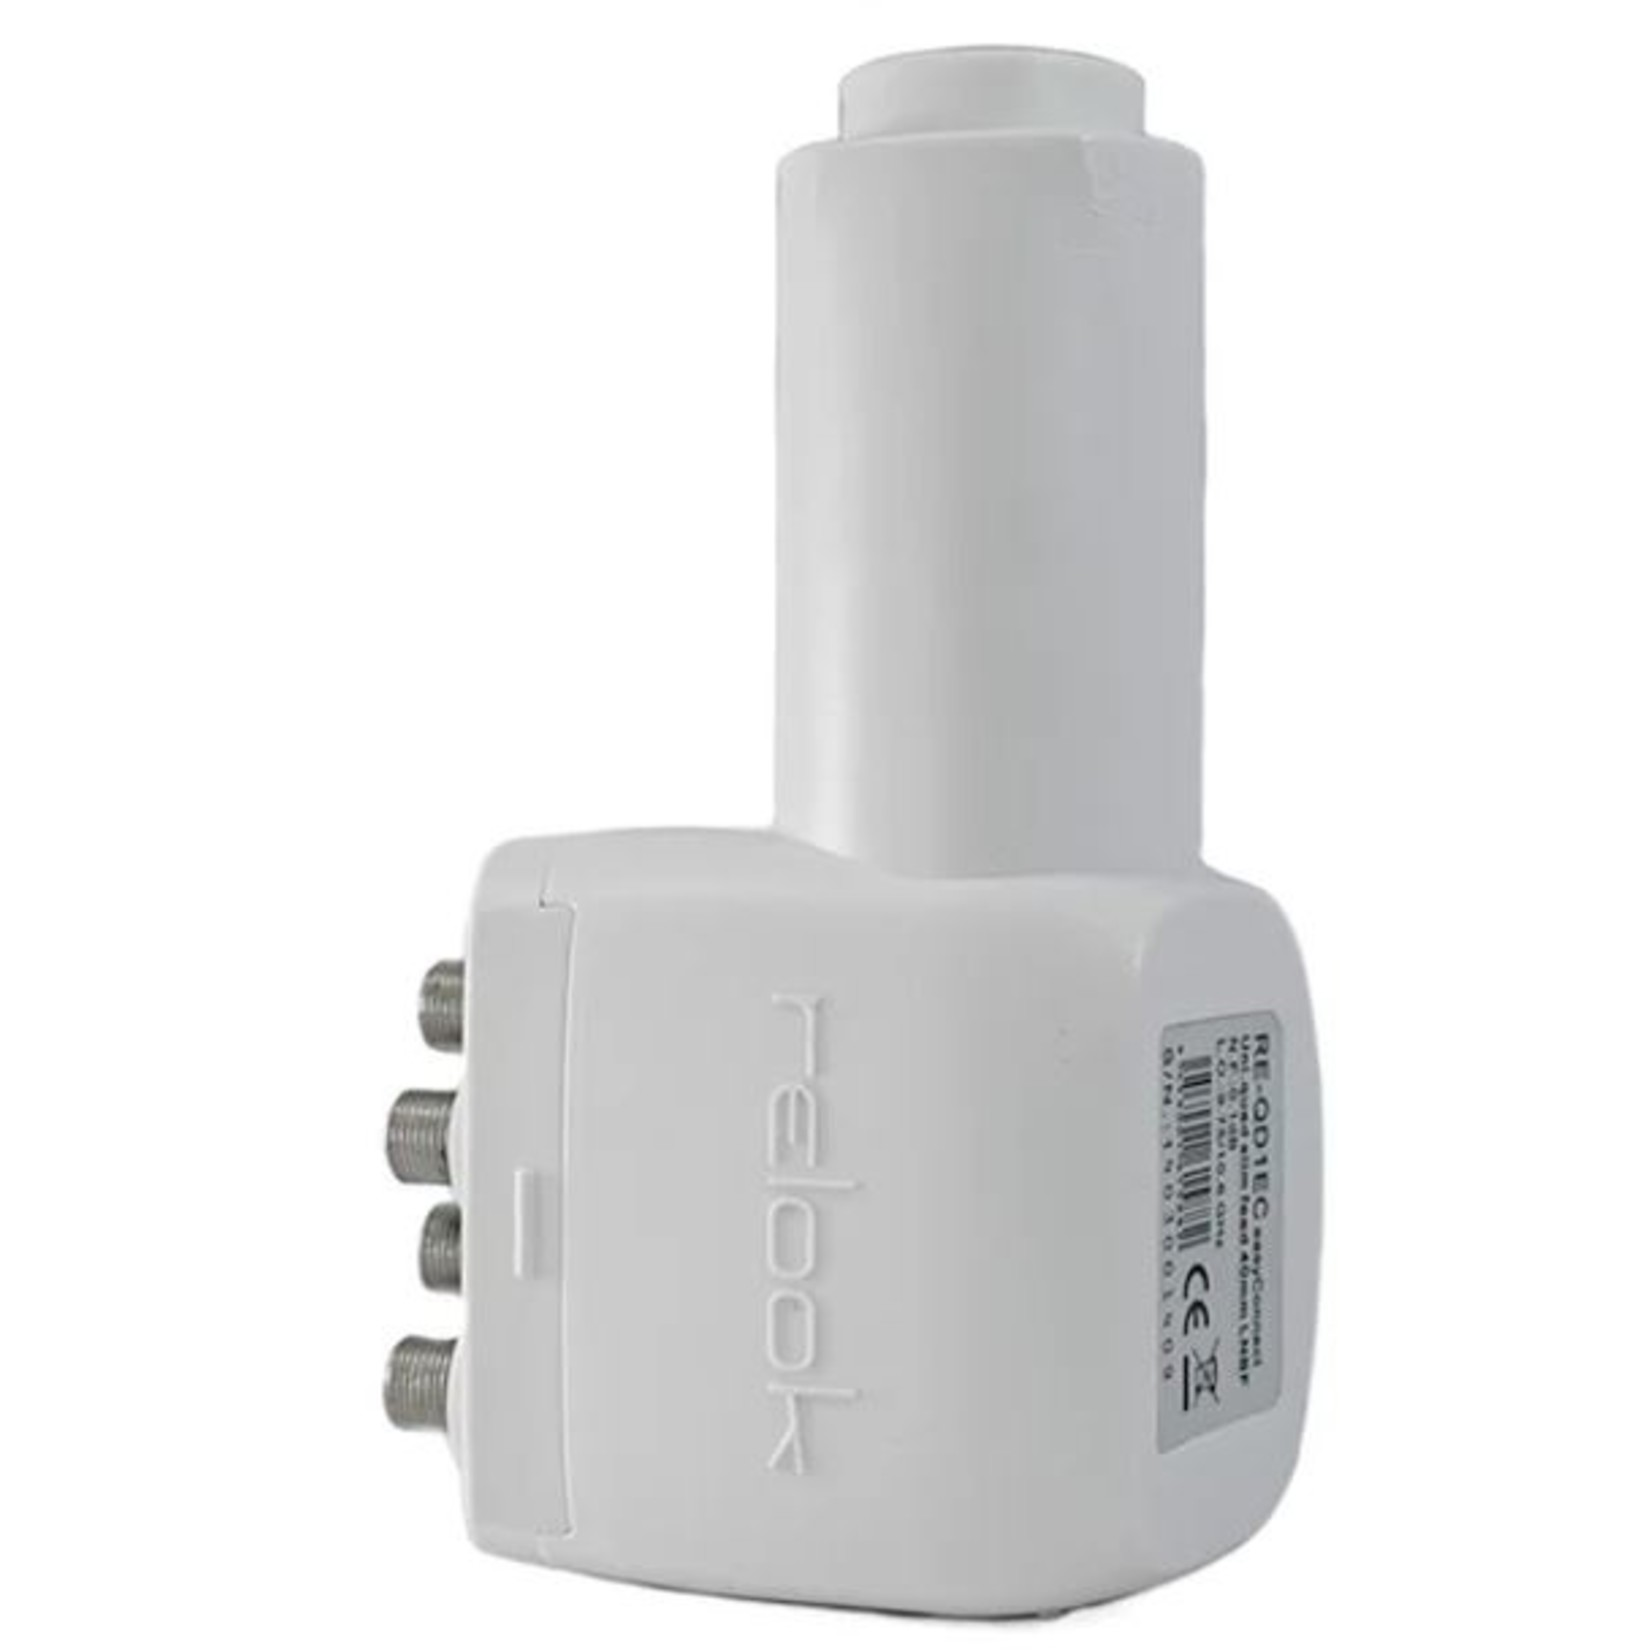 RELOOK LNB RELOOK QUAD SLIM FEED EASY CONNECT 40 mm - 0.1 db